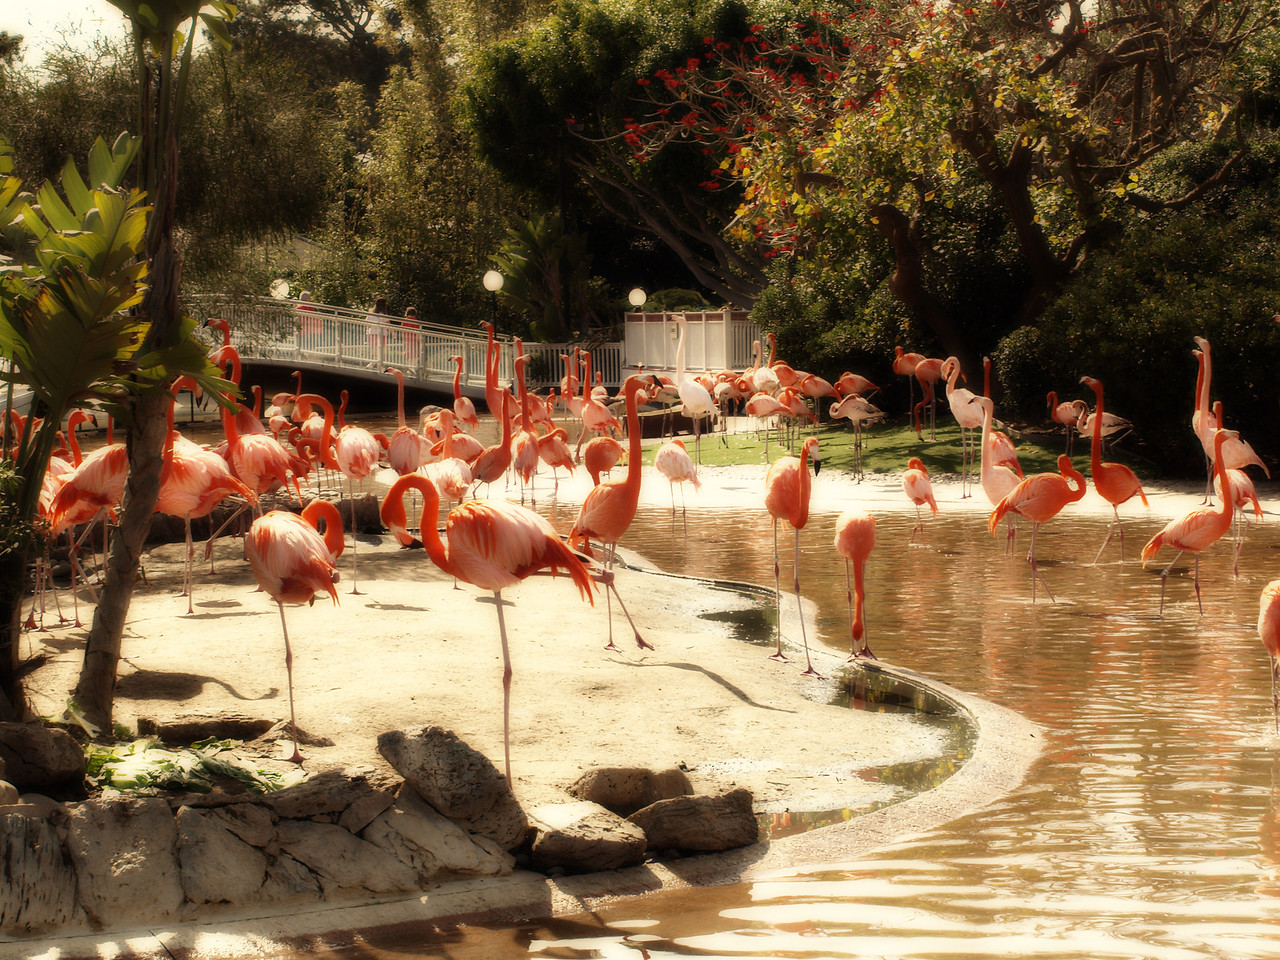 Flock of Flamingos  Order Code: B6